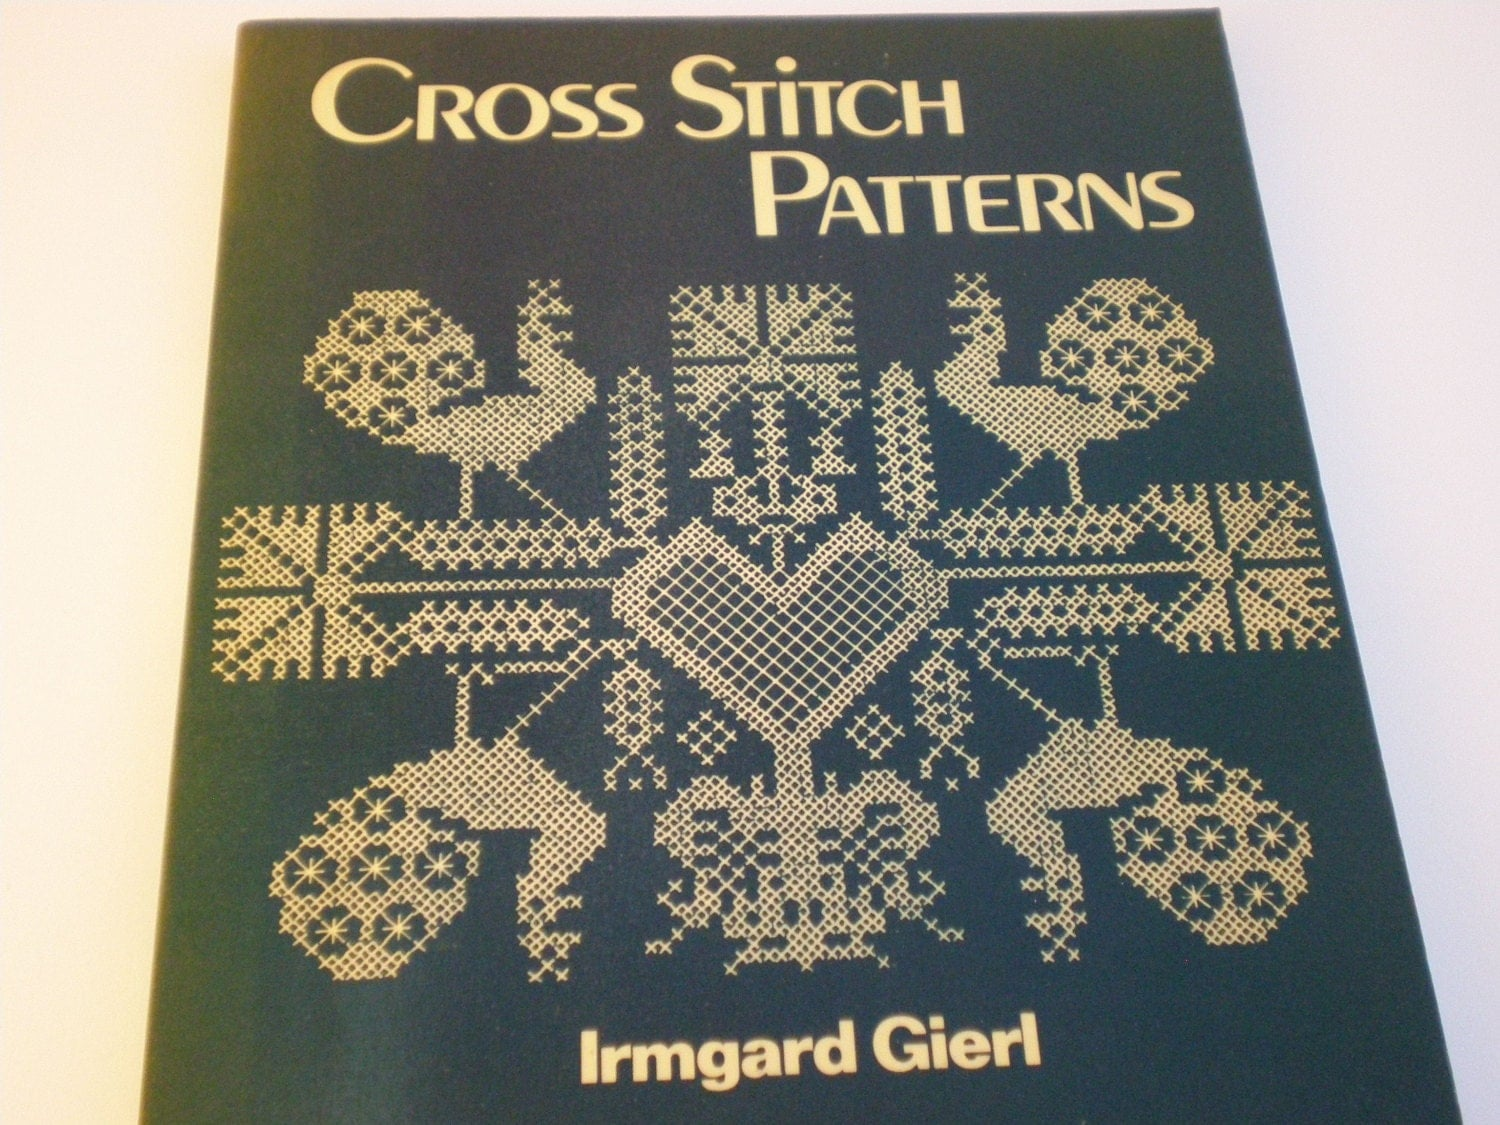 Vintage cross stitch patterns book by irmgard giert gift for